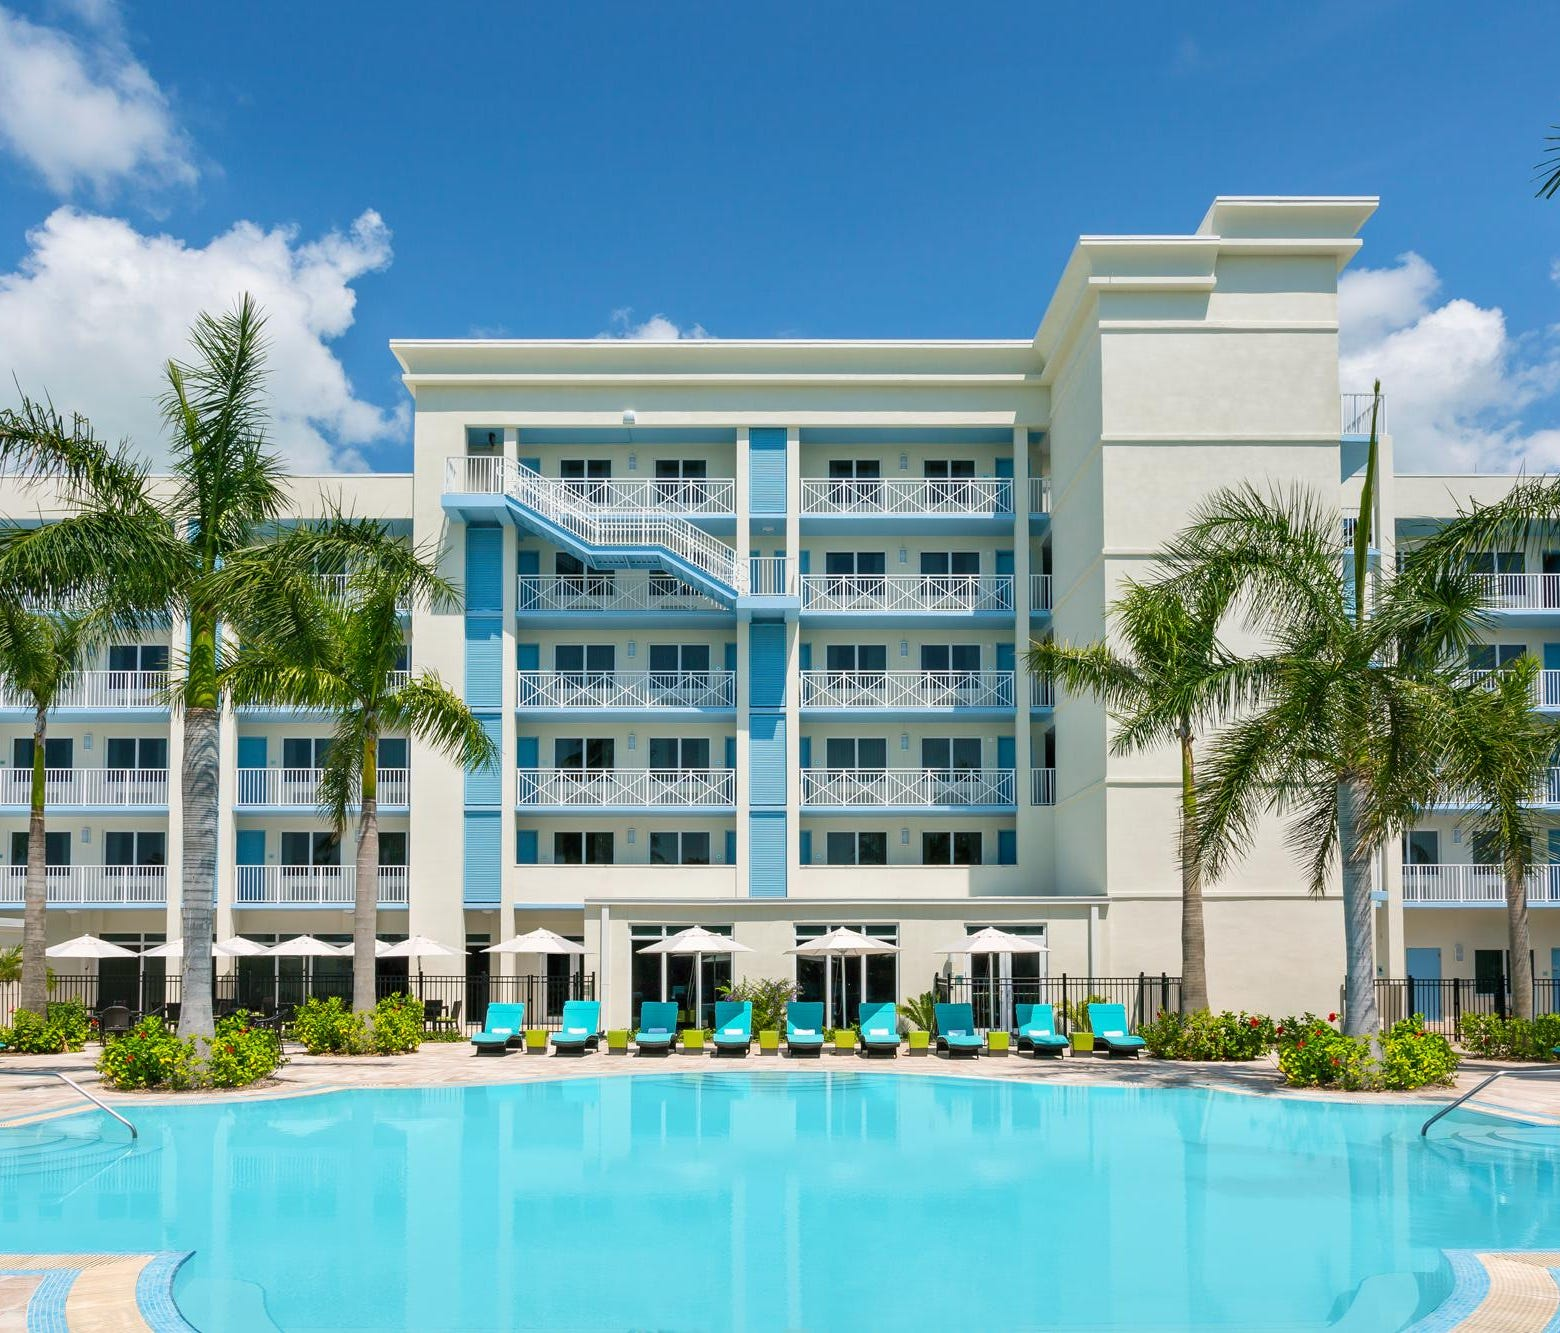 24 North Hotel: TripAdvisor pricing from $205 per night. For more information: https://www.tripadvisor.com/Hotel_Review-g34345-d8776712-Reviews-24_North_Hotel-Key_West_Florida_Keys_Florida.html